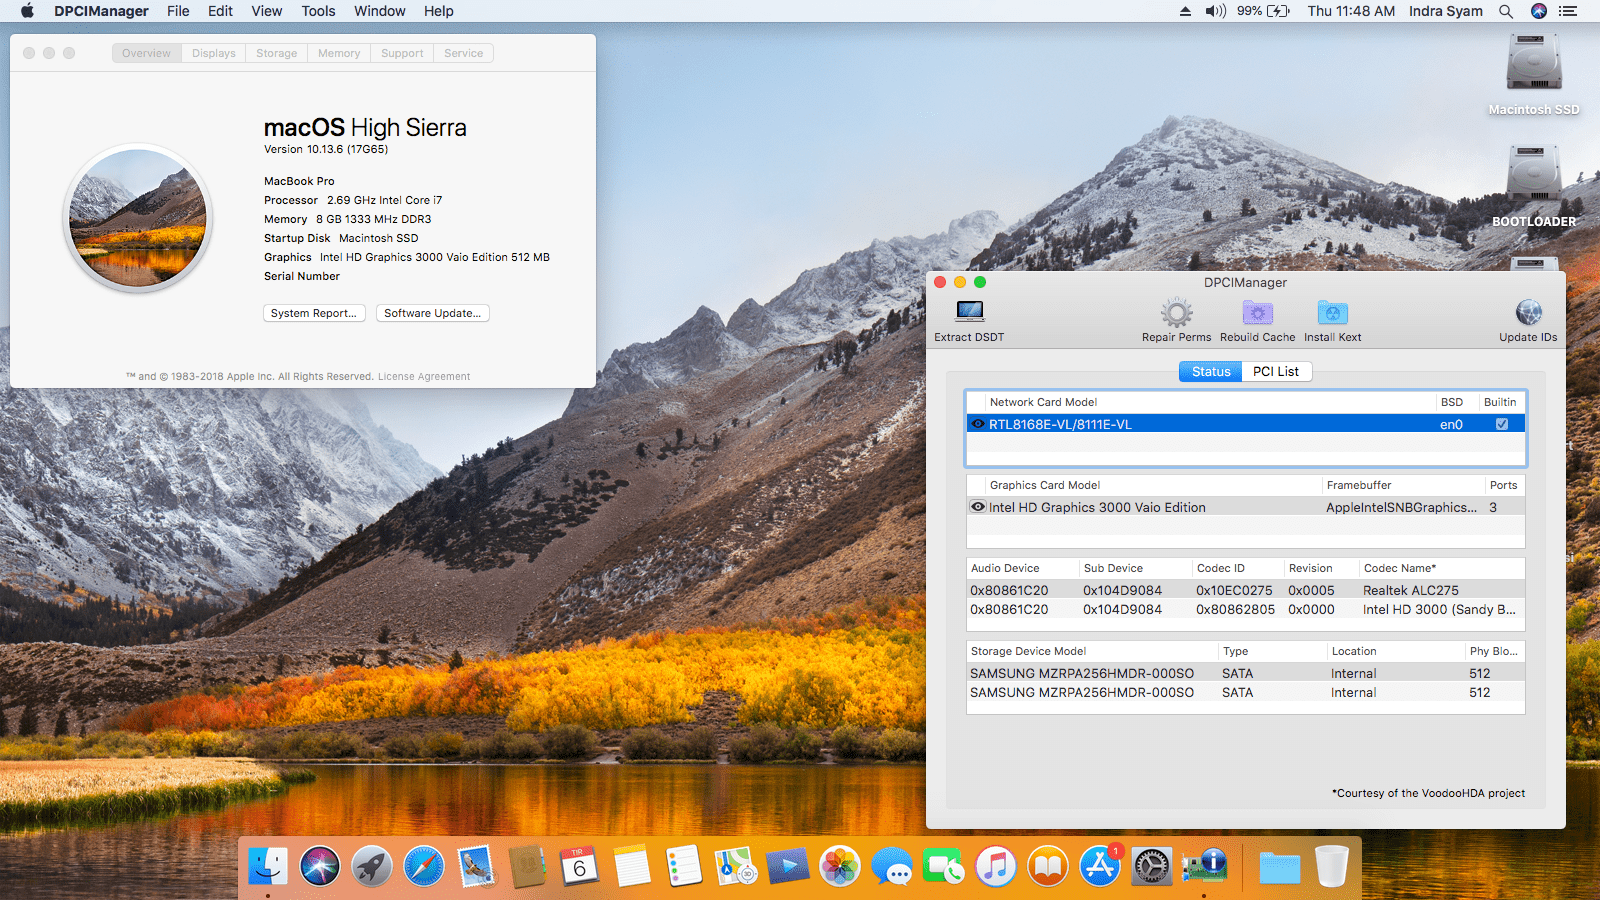 Success Hackintosh macOS High Sierra 10.13.6 Build 17G65 at Sony Vaio VPCZ217GG